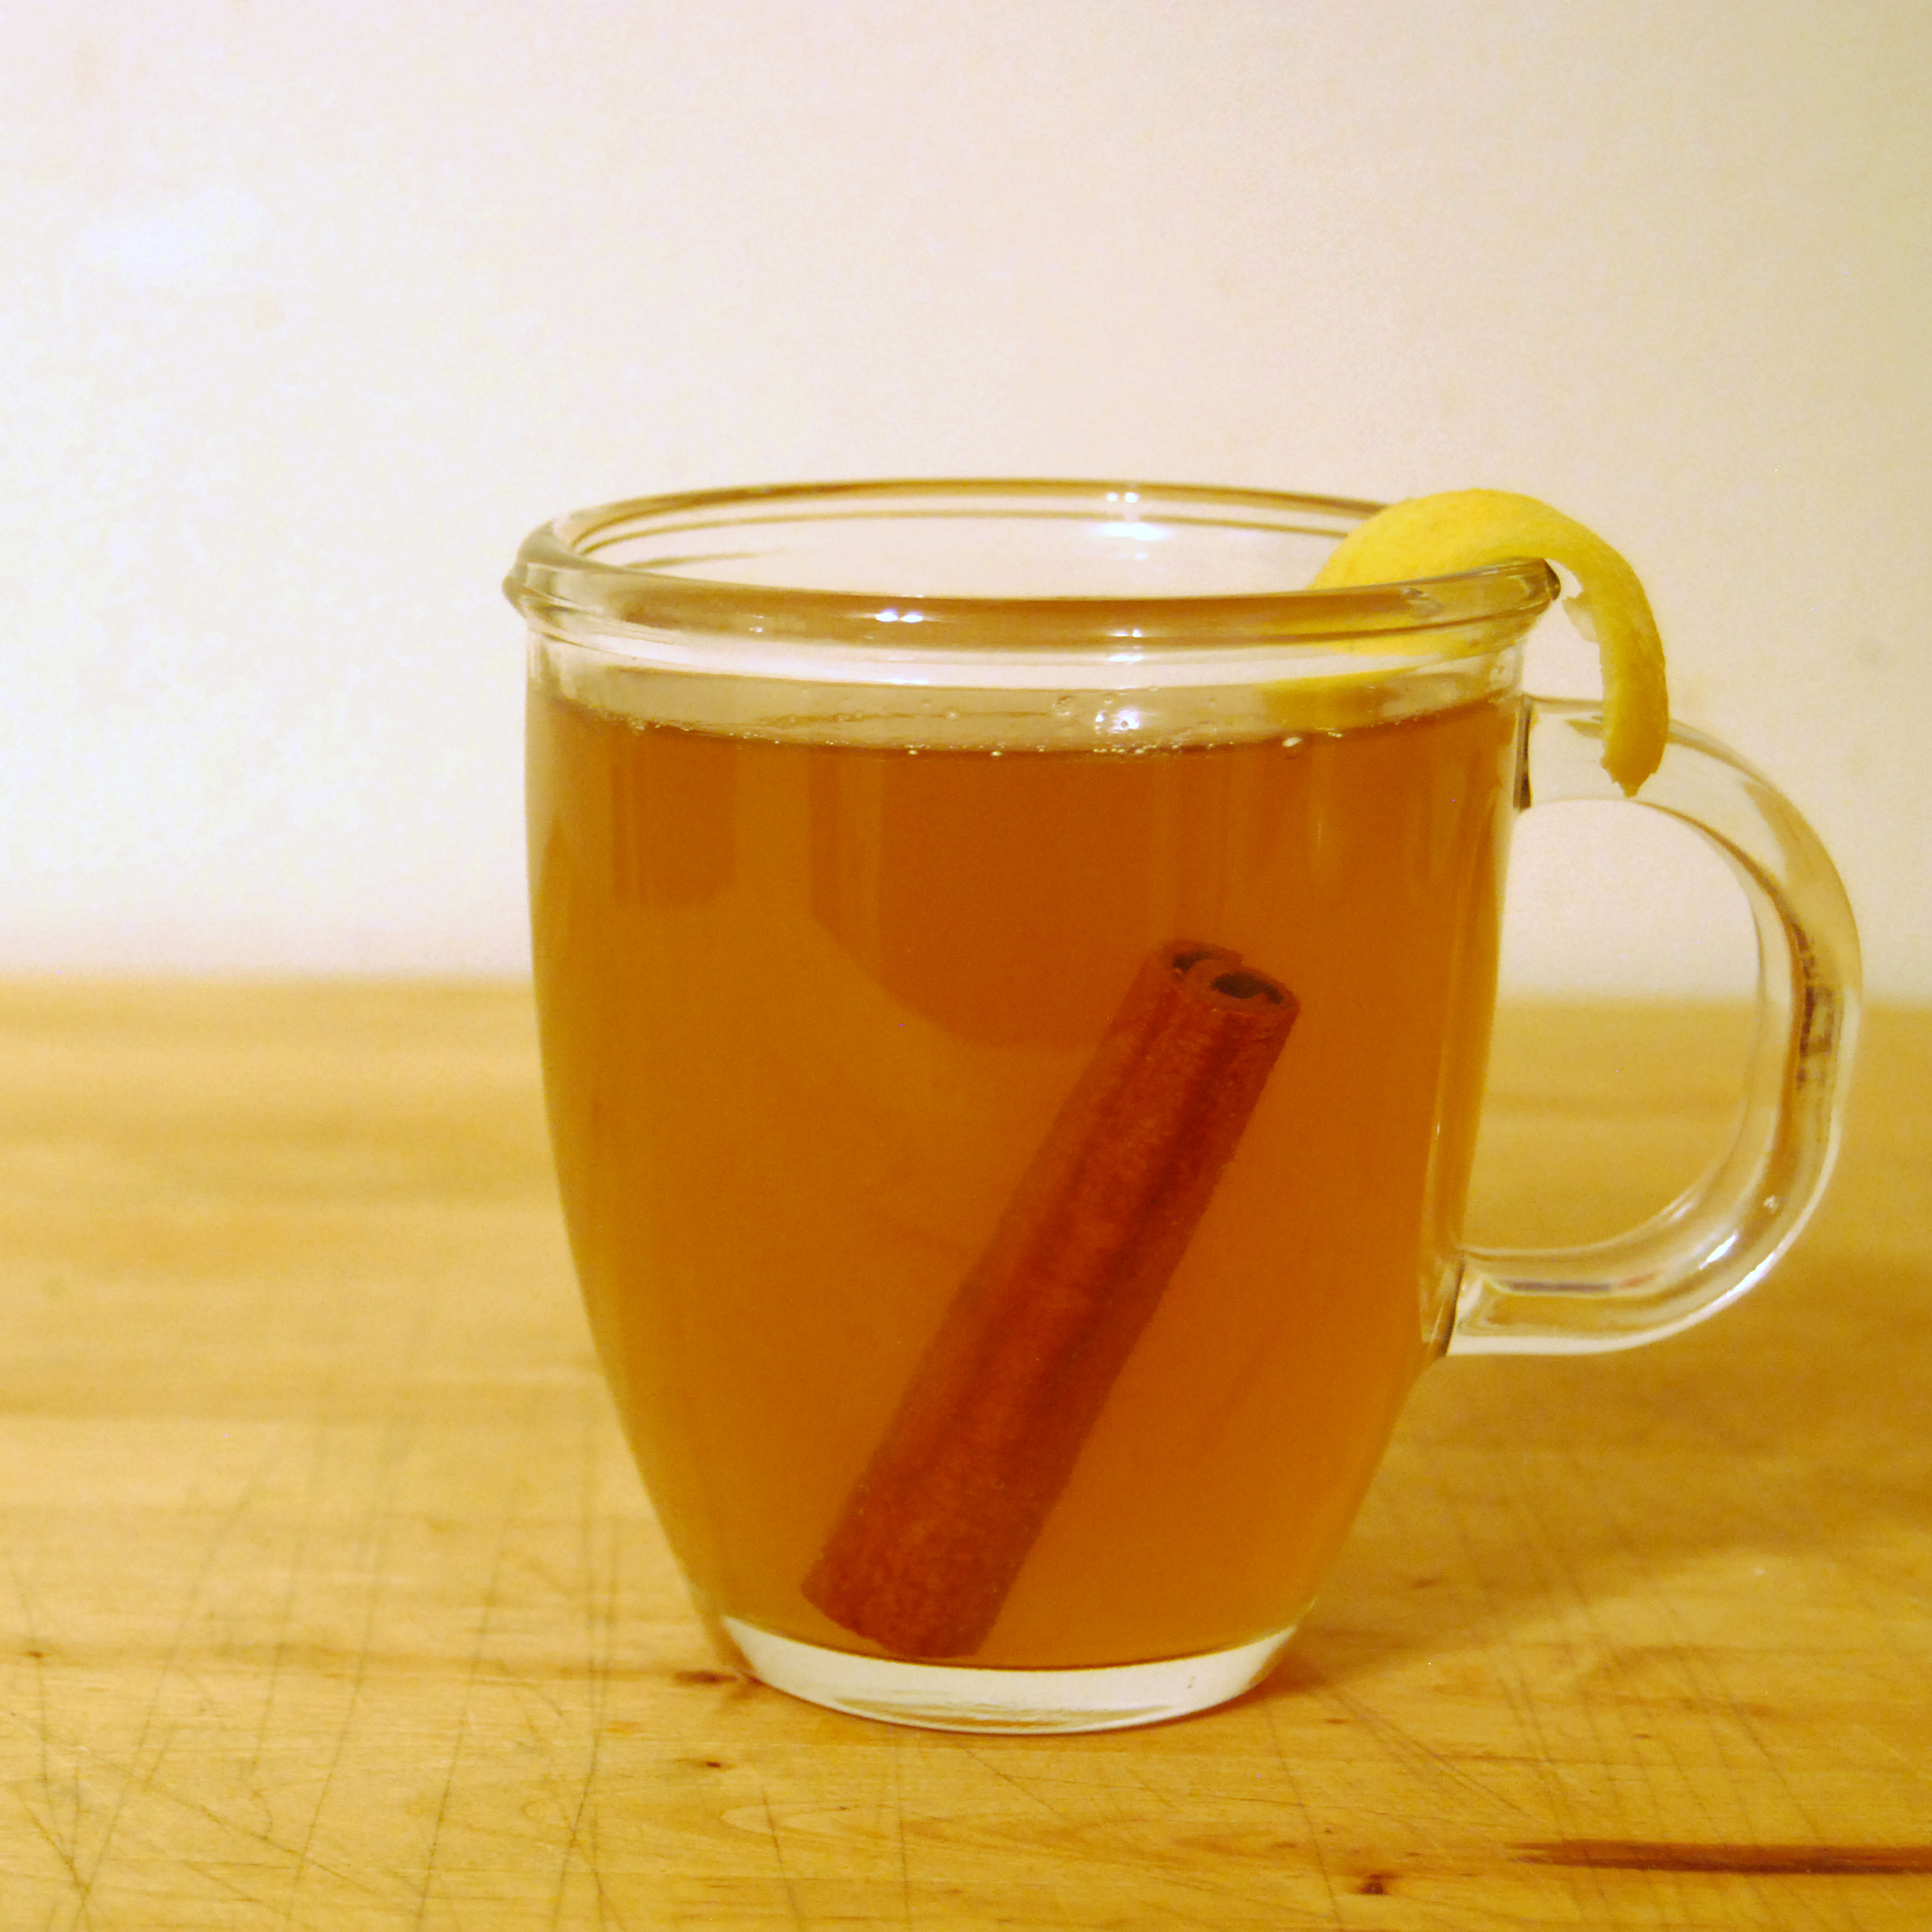 File:Hot toddy (1).jpg - Wikipedia, the free encyclopedia